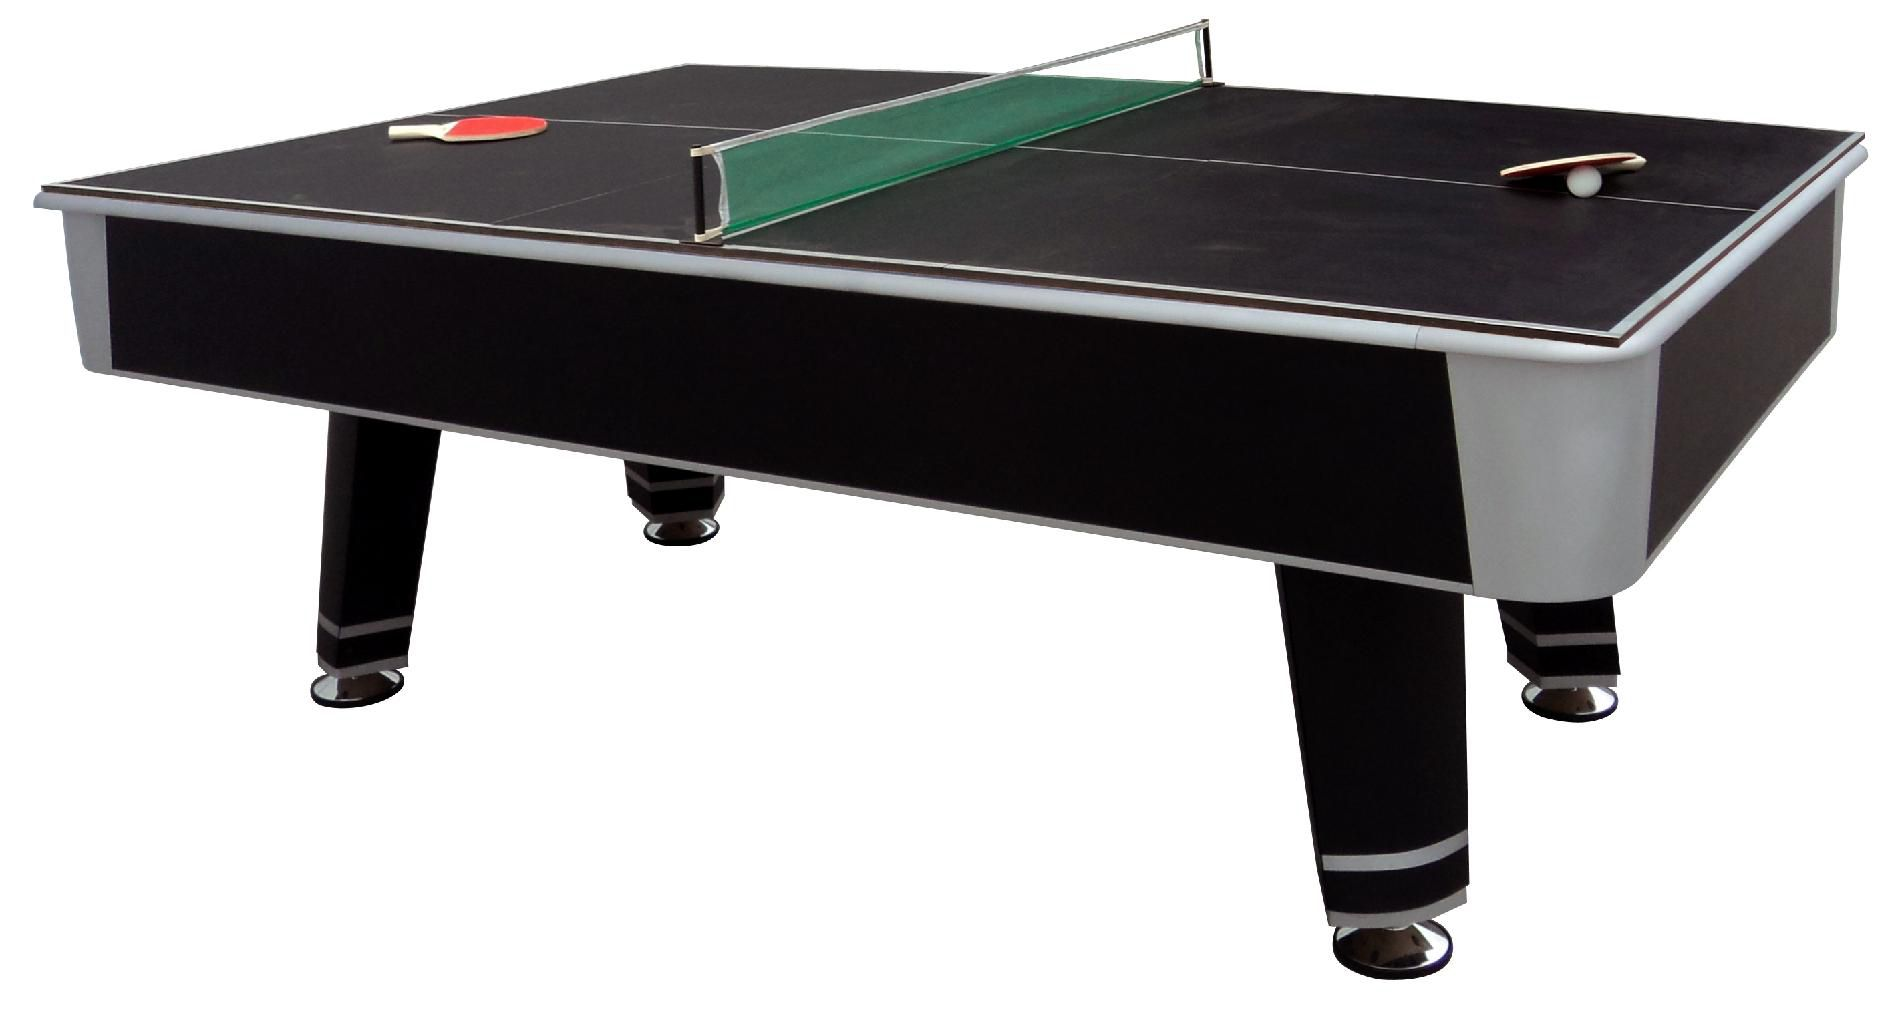 MD Sports 7.5ft Clifton Billiard Table with Bonus Table Tennis Top